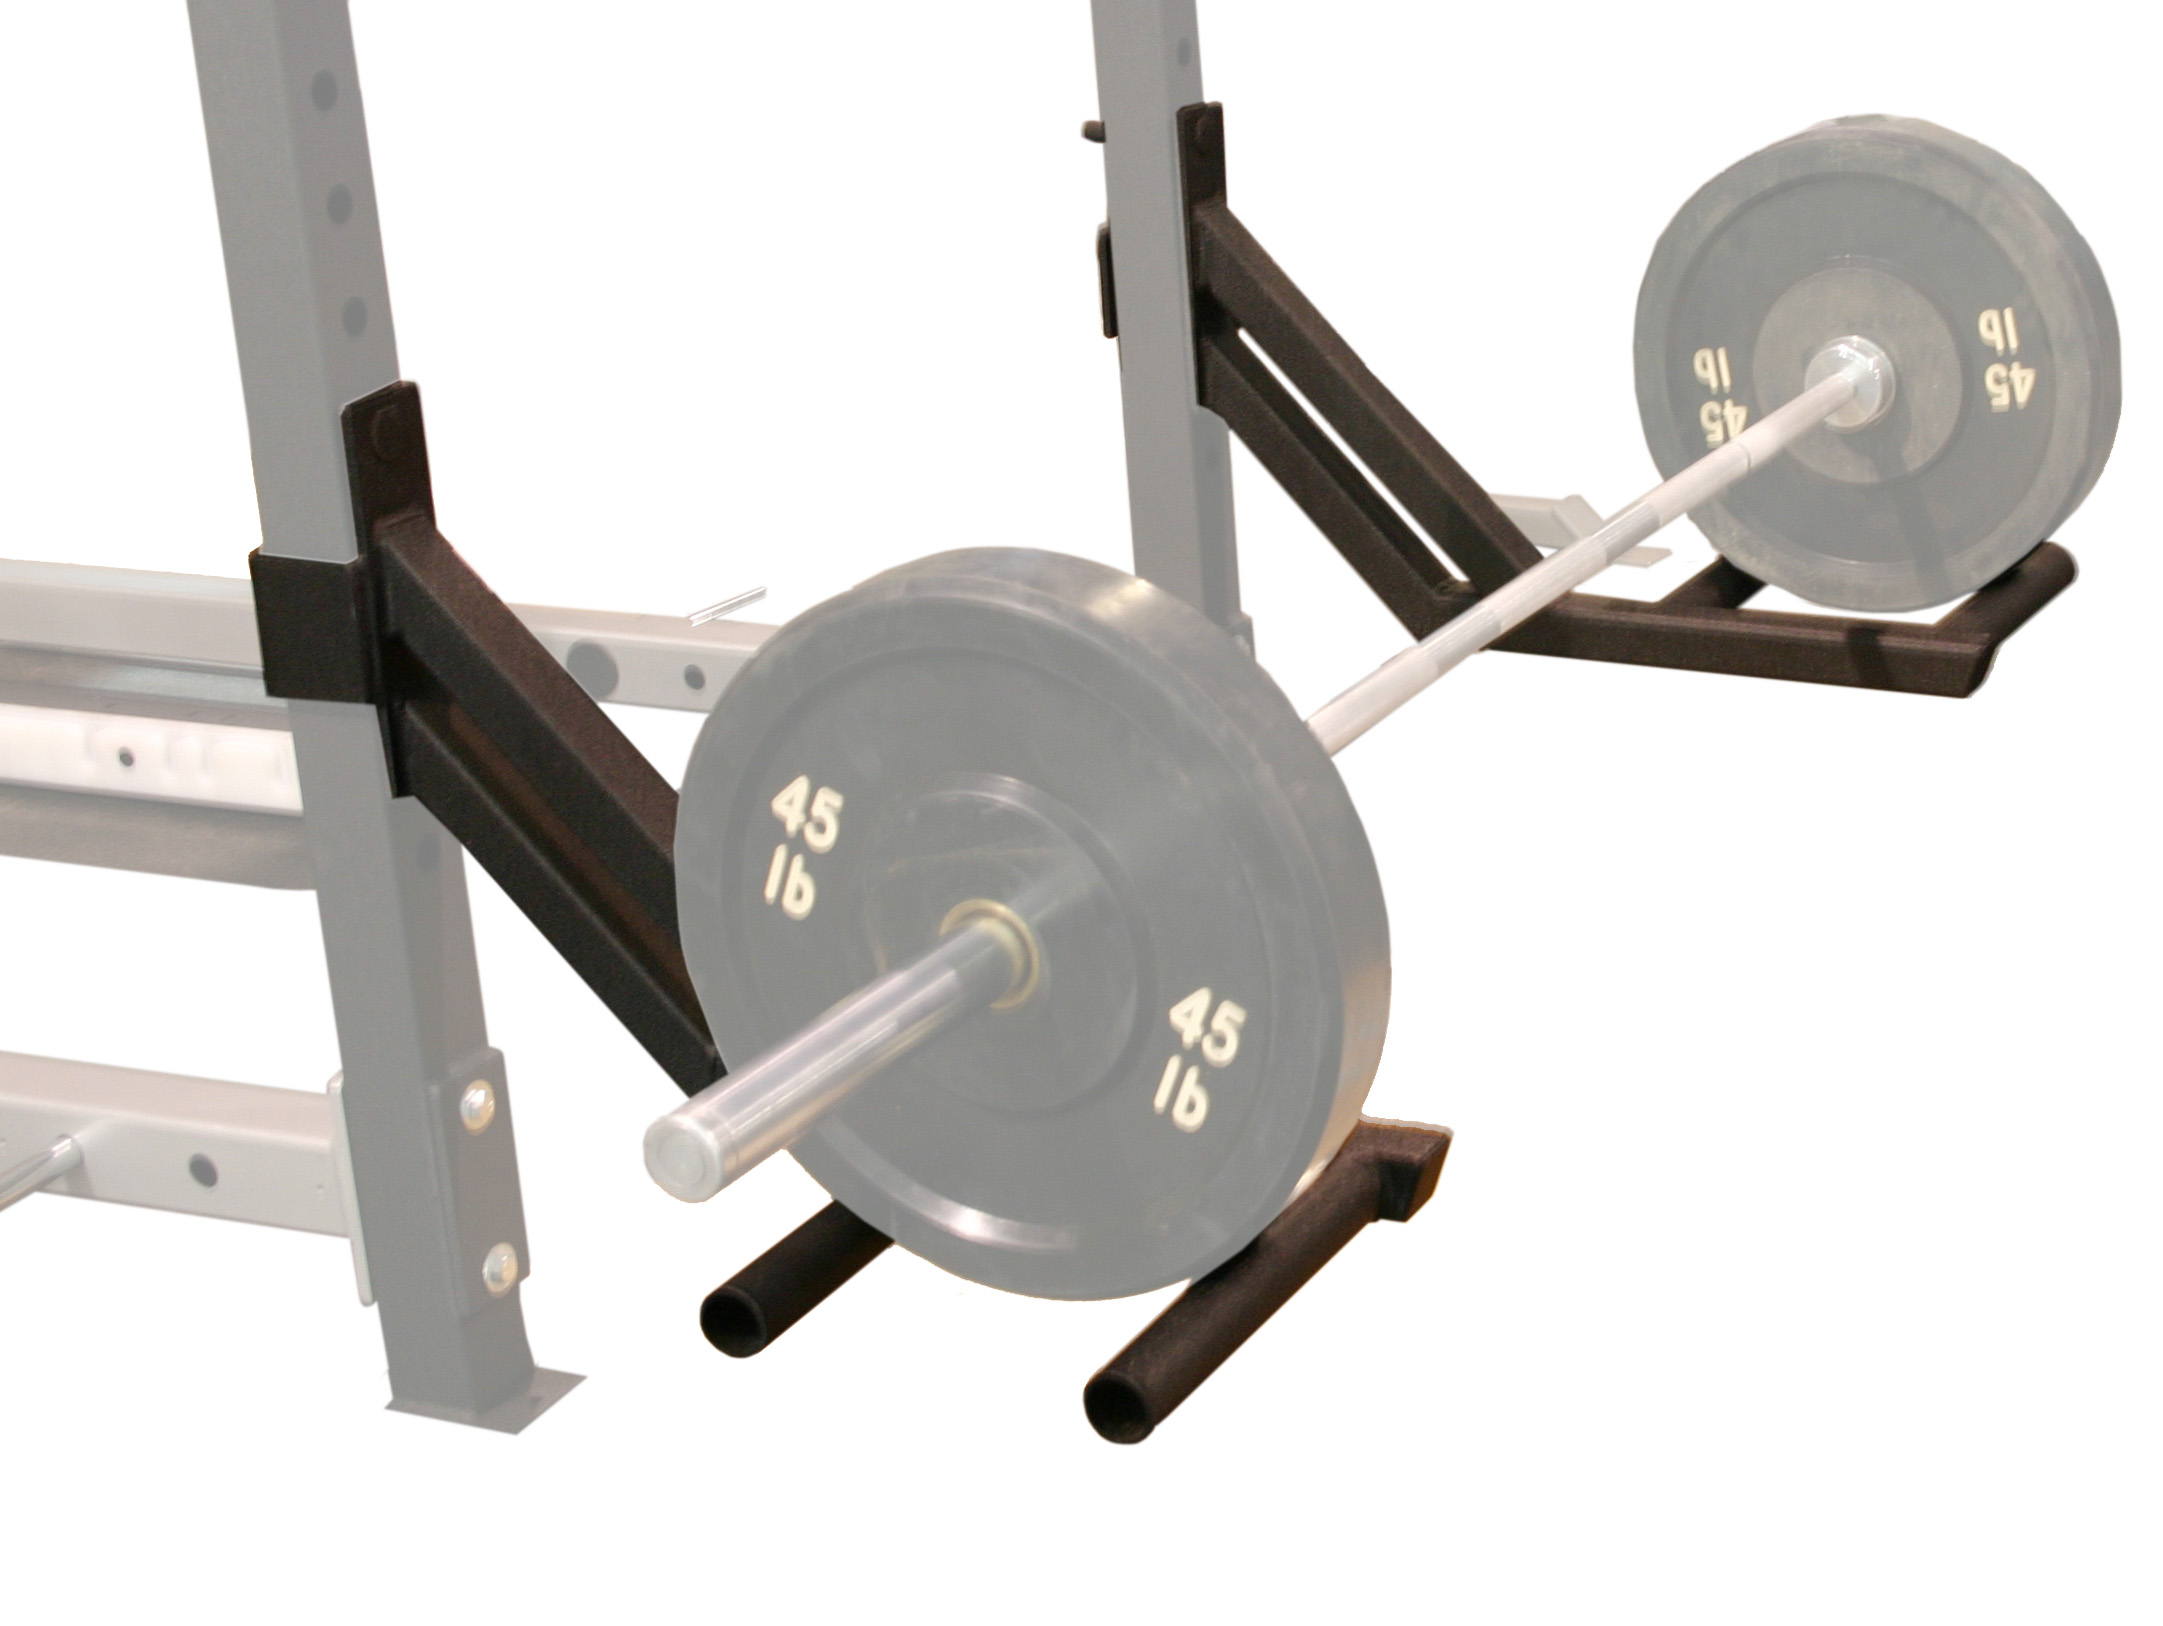 the of cage squat wood build used out img own bar rack i for your power supports wooden what